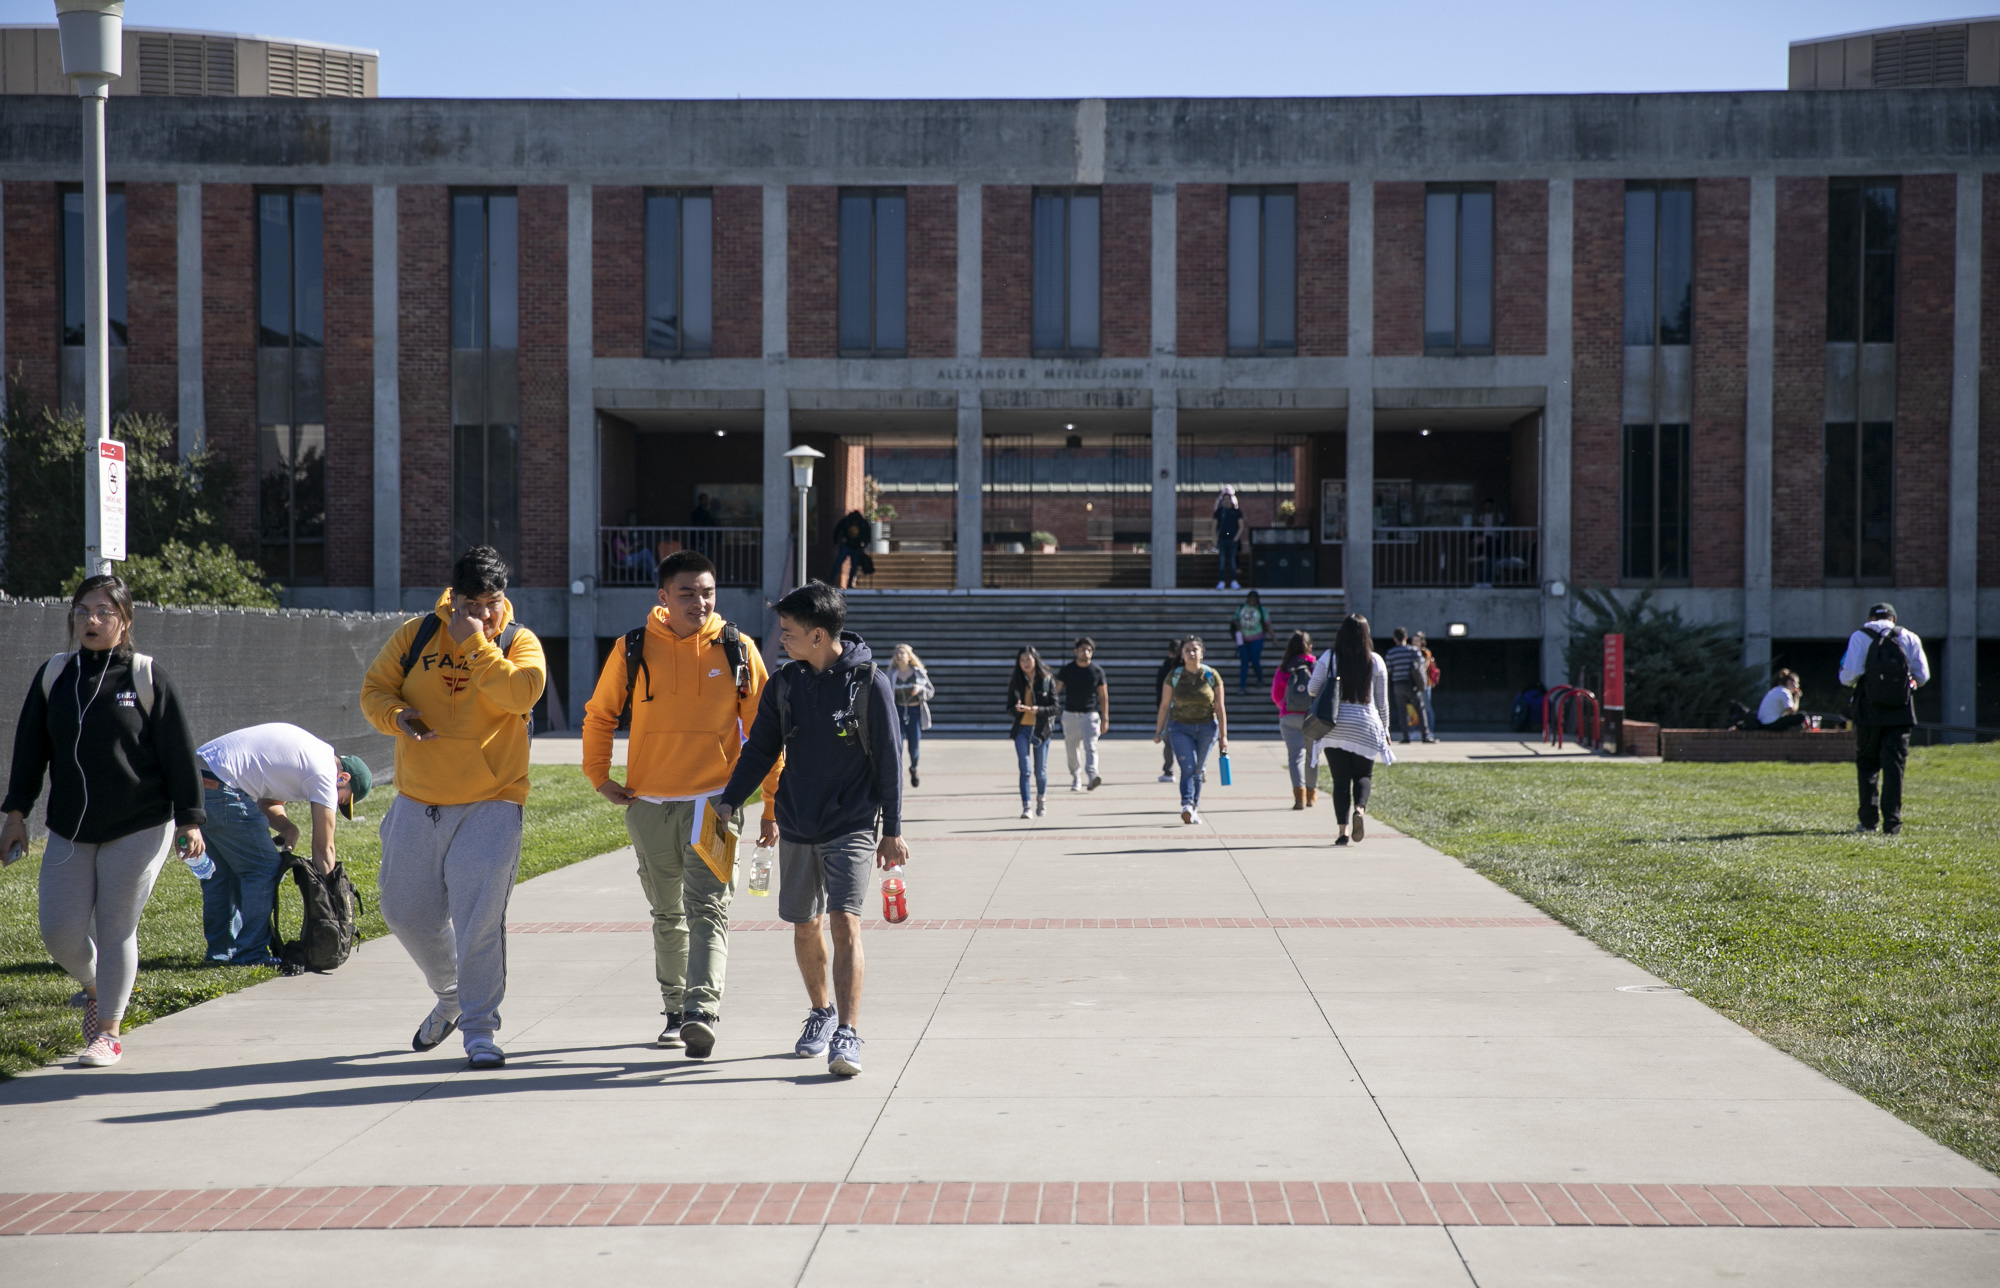 Students walk near Meiklejohn Hall at California State University East Bay. Photo by Anne Wernikoff for CalMatters